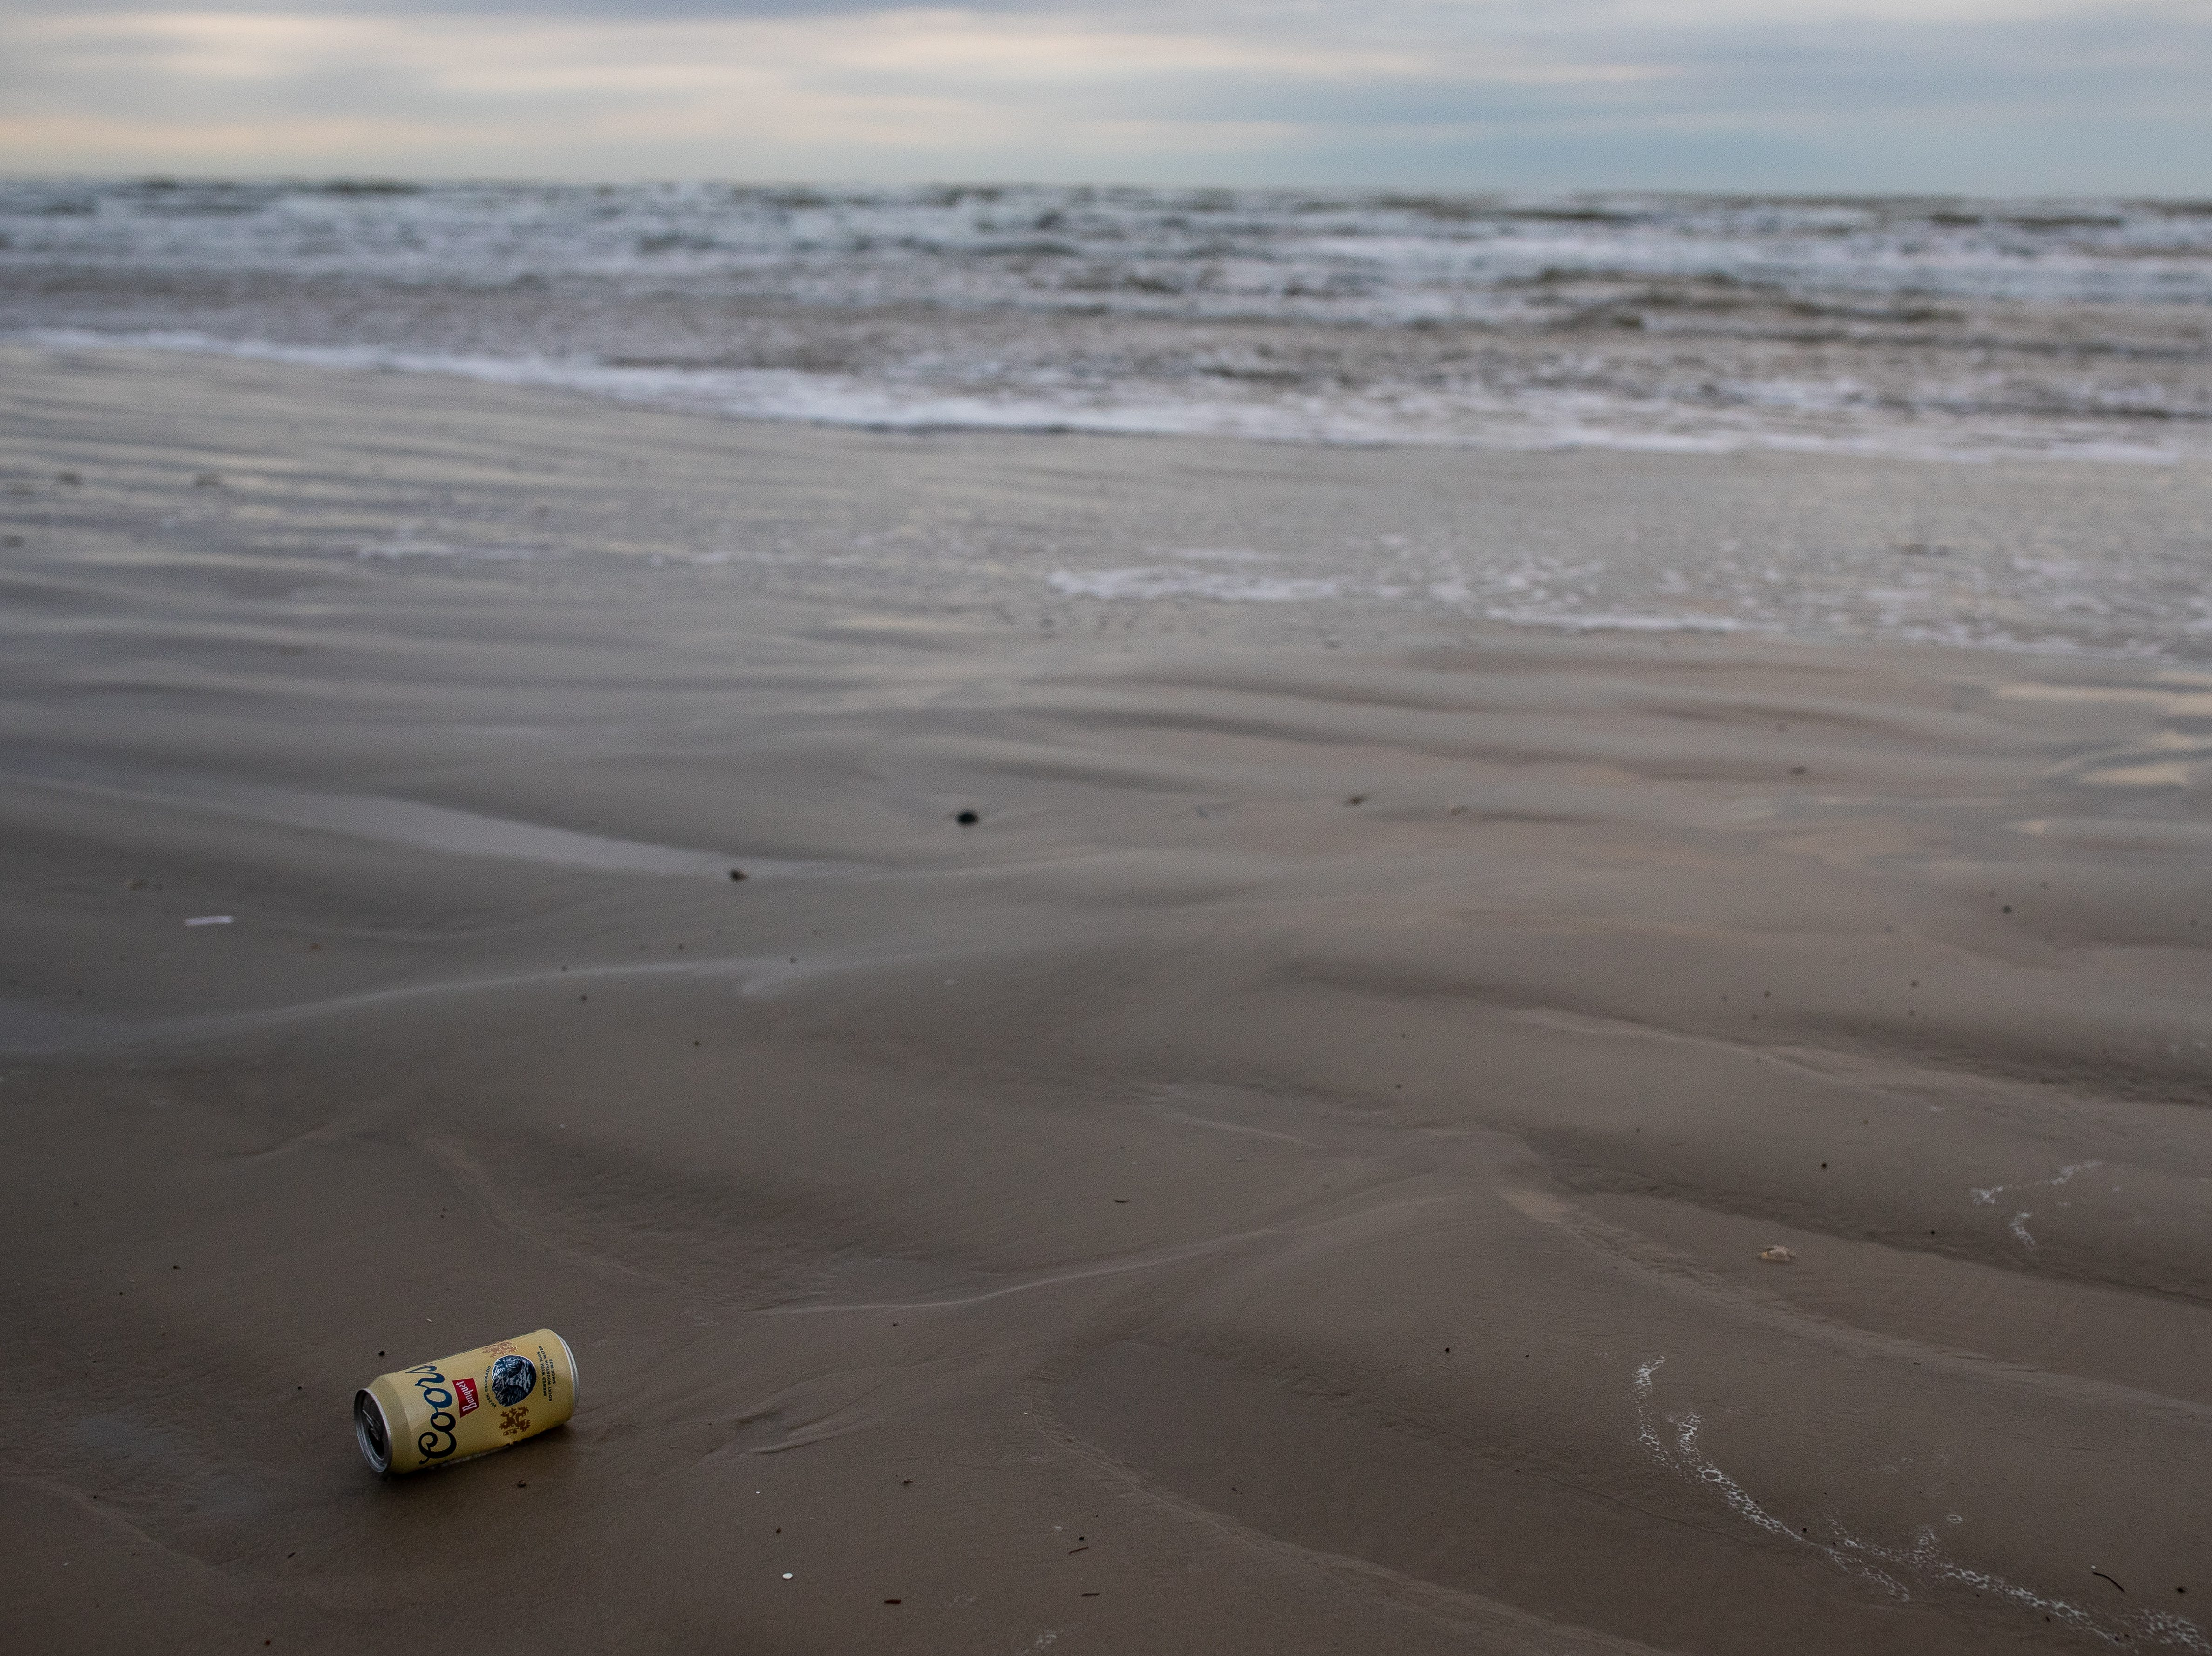 A beer can blows along the beach in Port Aransas, left behind on the beach from the bay before during the week of spring break on Friday, March 15, 2019.